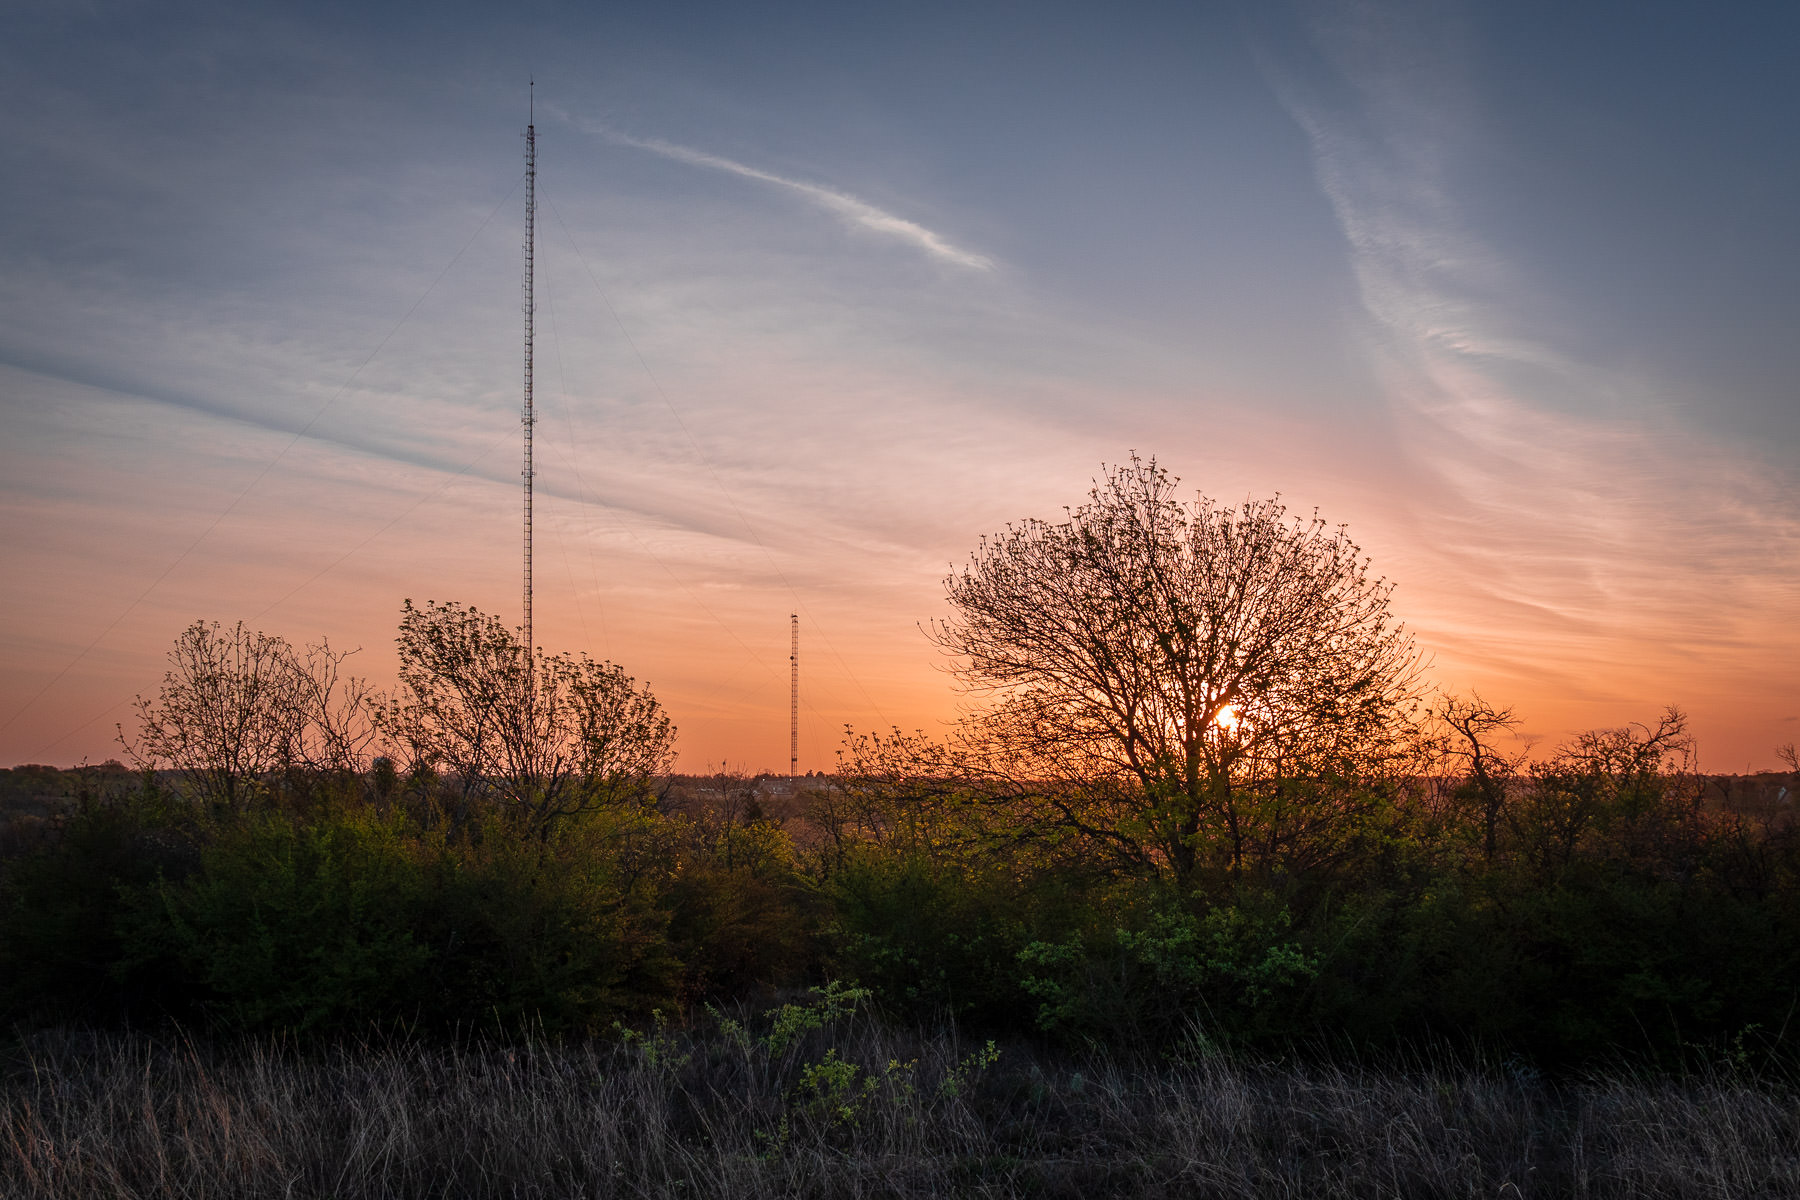 Broadcast towers rise into the sky as the sun rises over Fort Worth, Texas' Tandy Hills Natural Area.